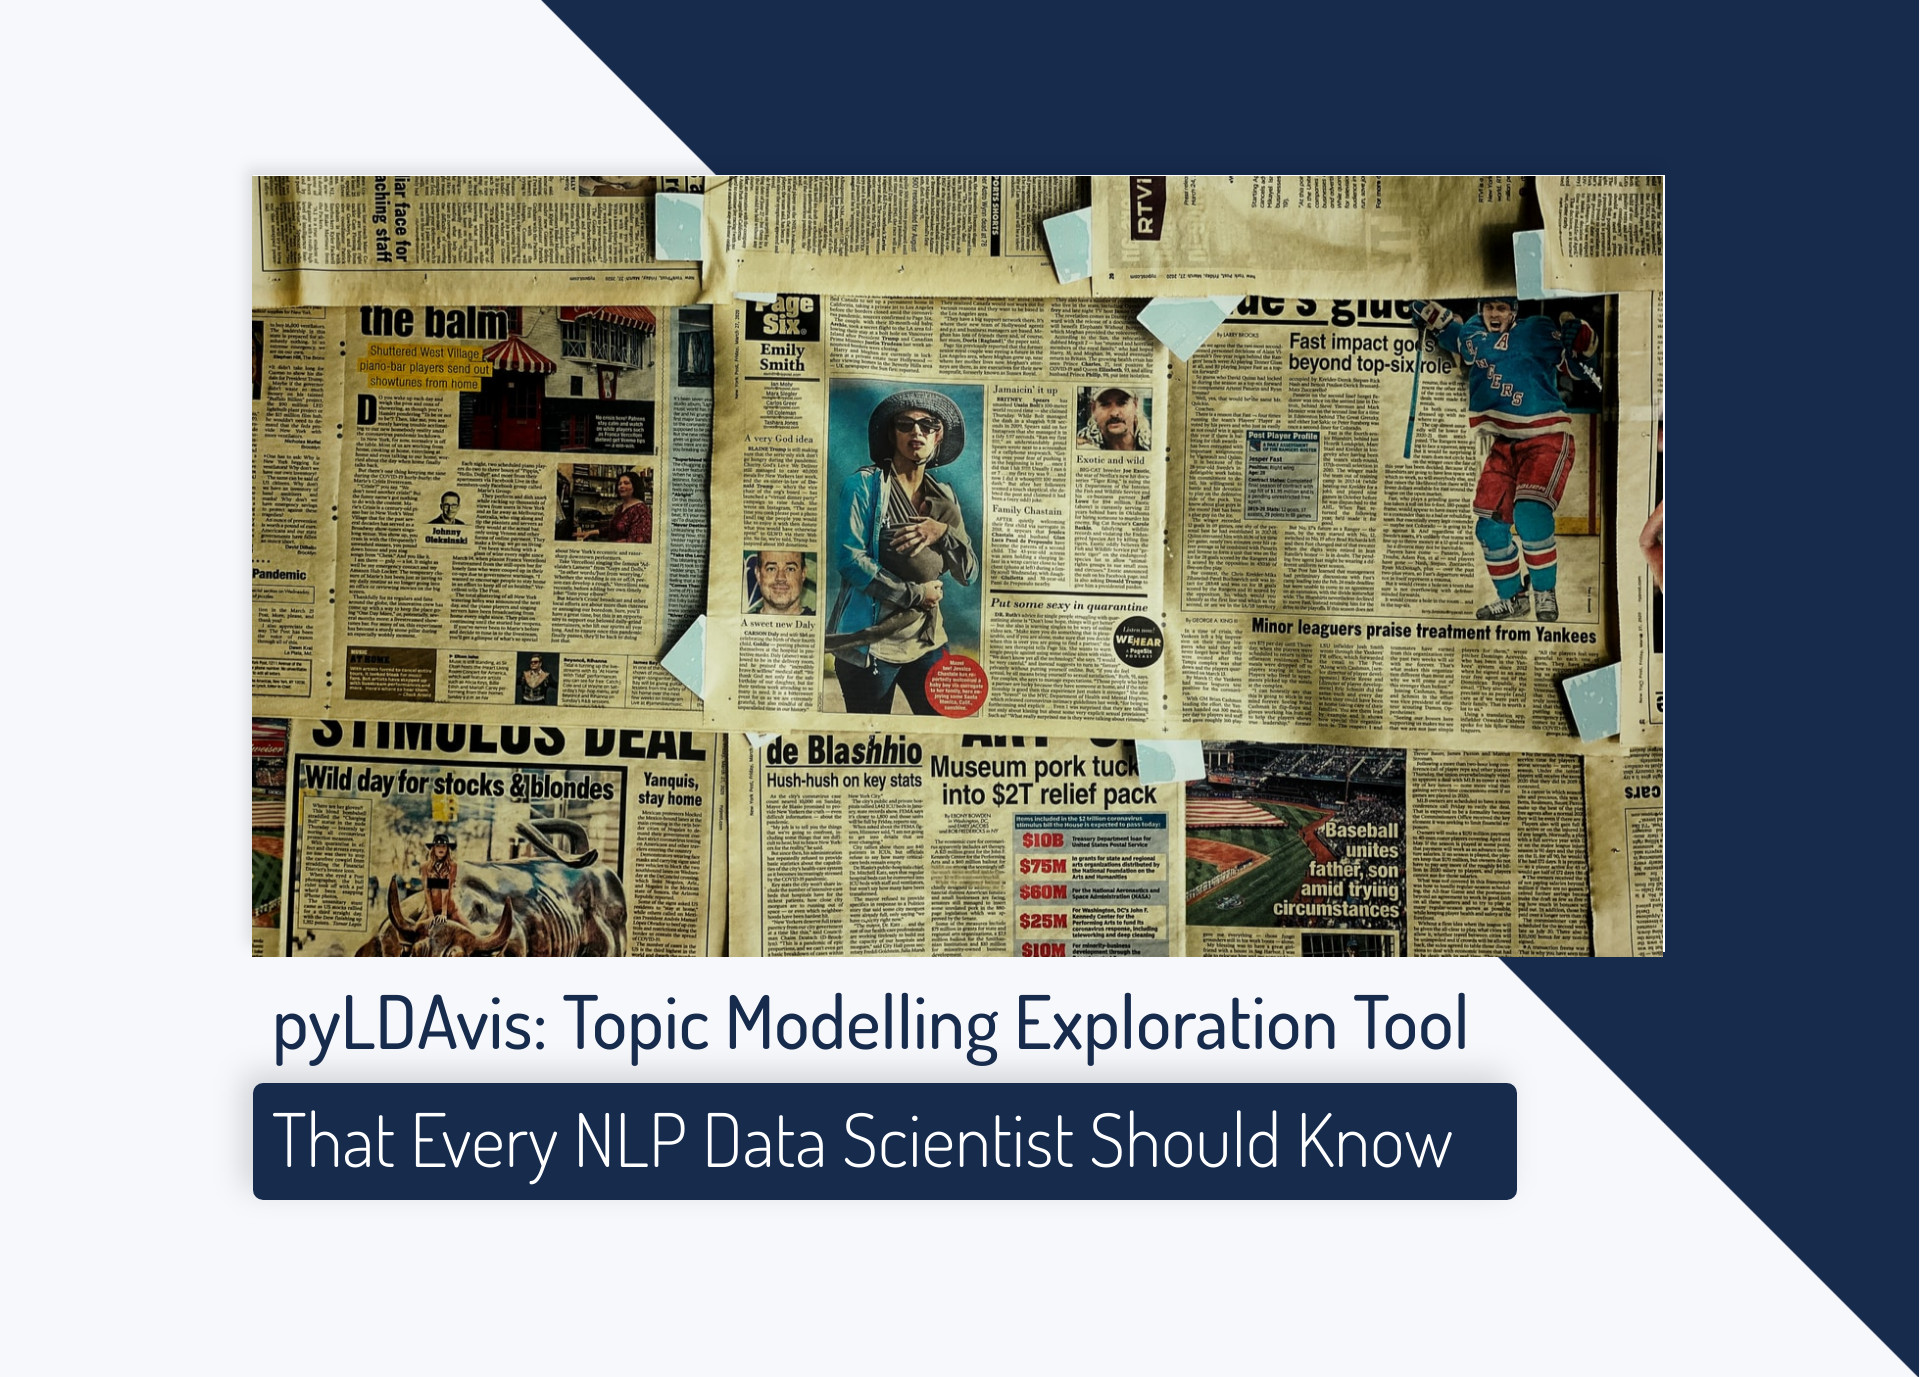 pyLDAvis: Topic Modelling Exploration Tool That Every NLP Data Scientist Should Know